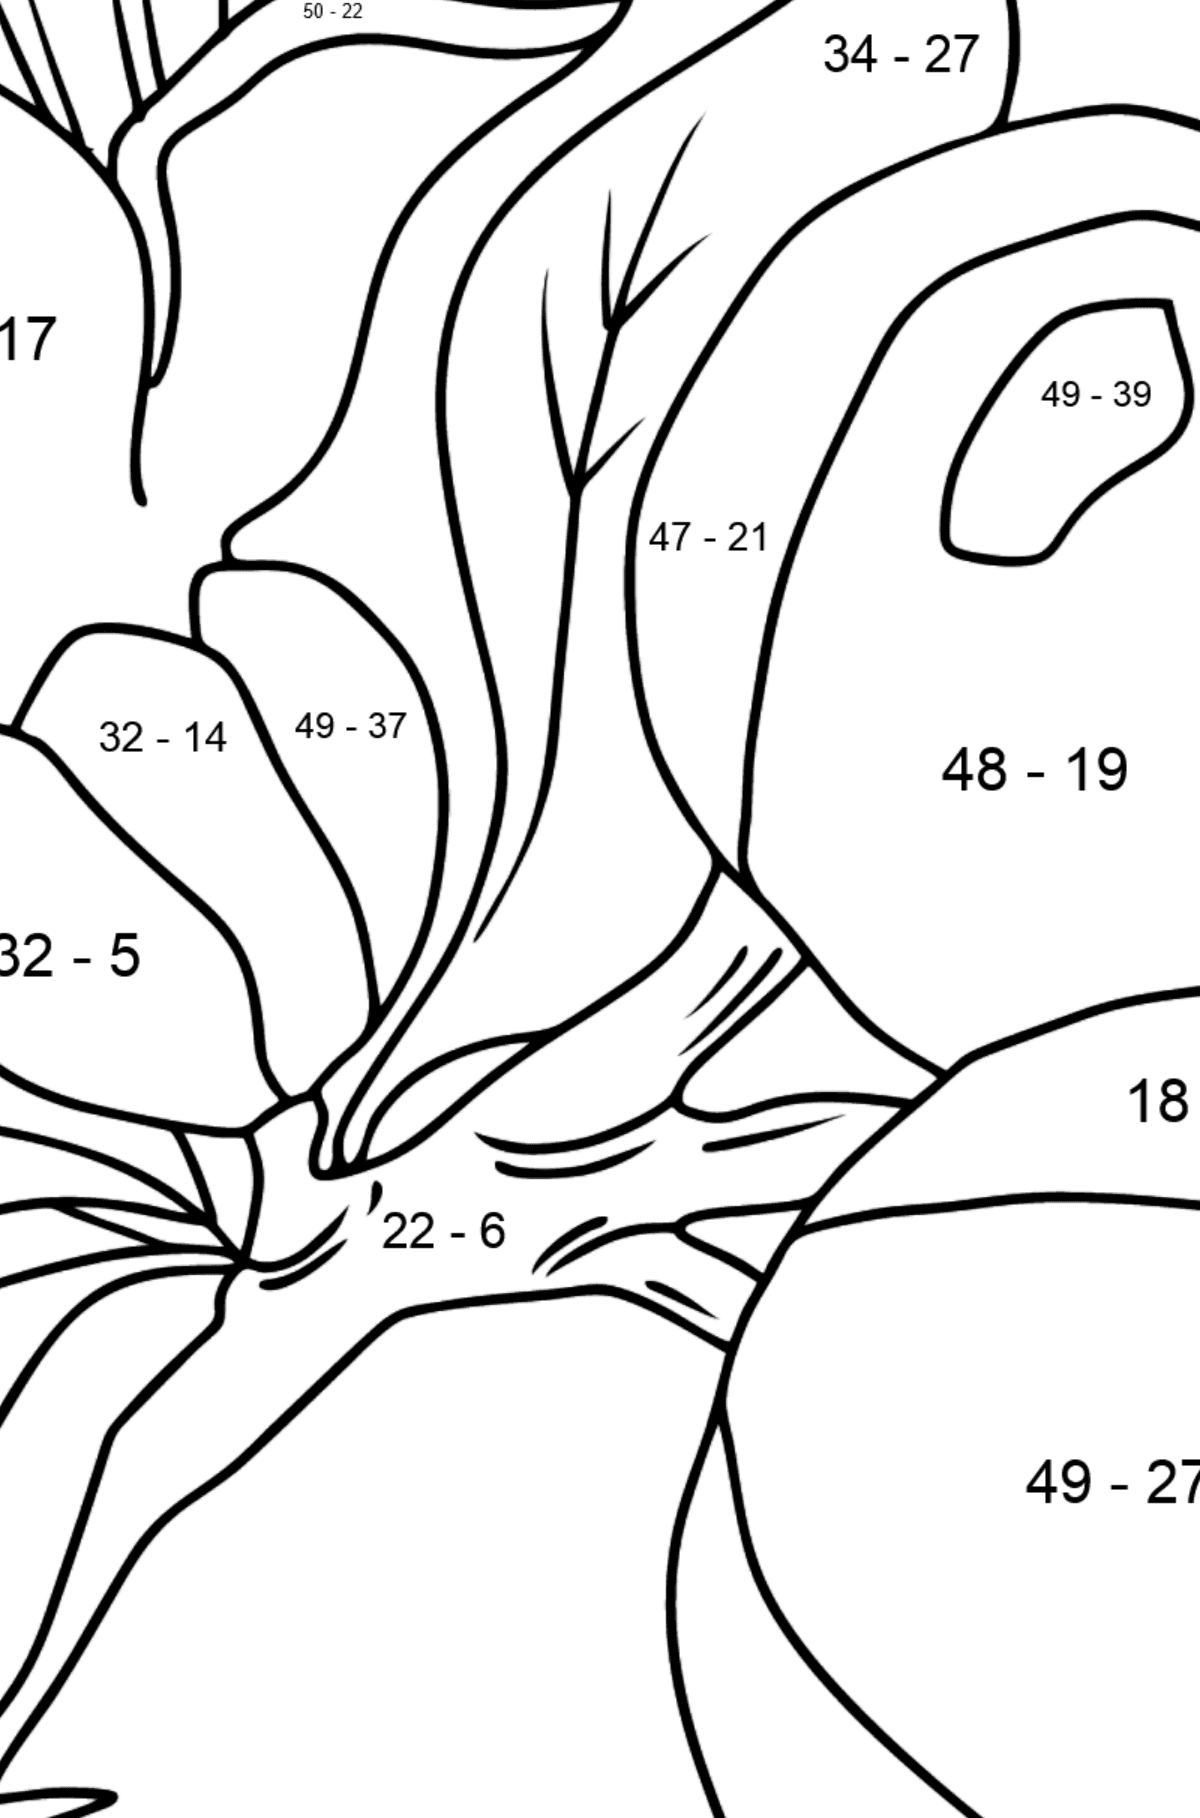 Coloring Page - flowers and fruits - Math Coloring - Subtraction for Kids